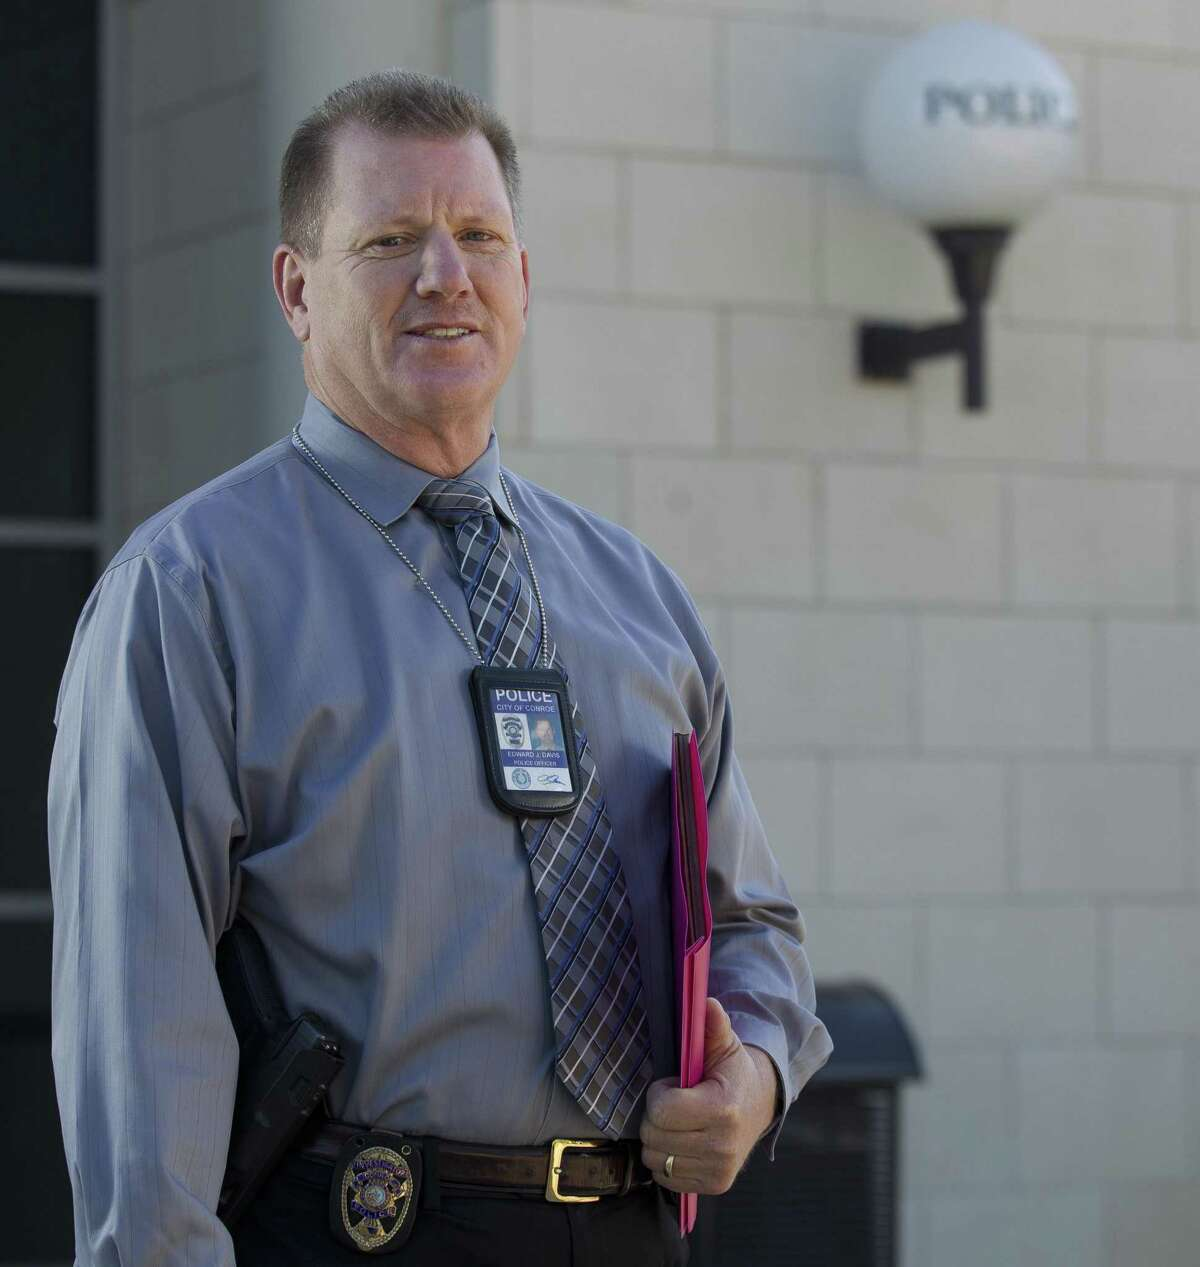 Edward Davis, a recruiter with the Conroe Police Department, poses for a portrait outside the department's headquarters on Plantation Drive, Thursday, March 21, 2019, in Conroe. Davis has been with the department for 30 years, serving 20 of those years as a detective.